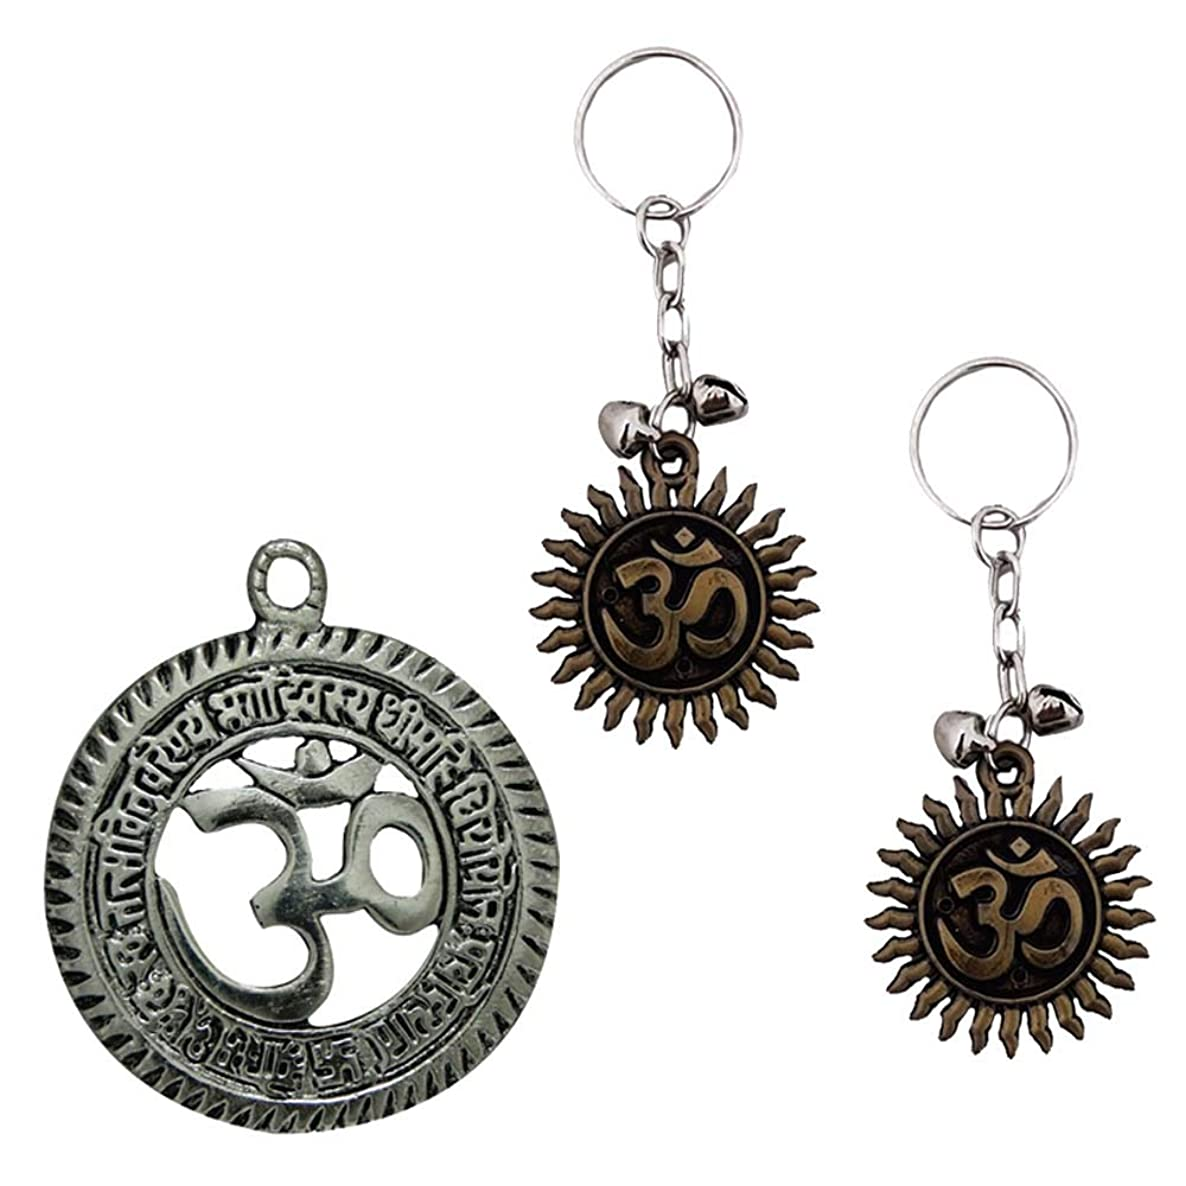 Divya Mantra Sri Om Aum Hindu Symbol Talisman Gift Pendant Amulet Decor Good Luck Charm Protection Interior Wall Hanging Living Room/Decoration Showpiece & Set of 2 Keychains for Bike/Car/Home